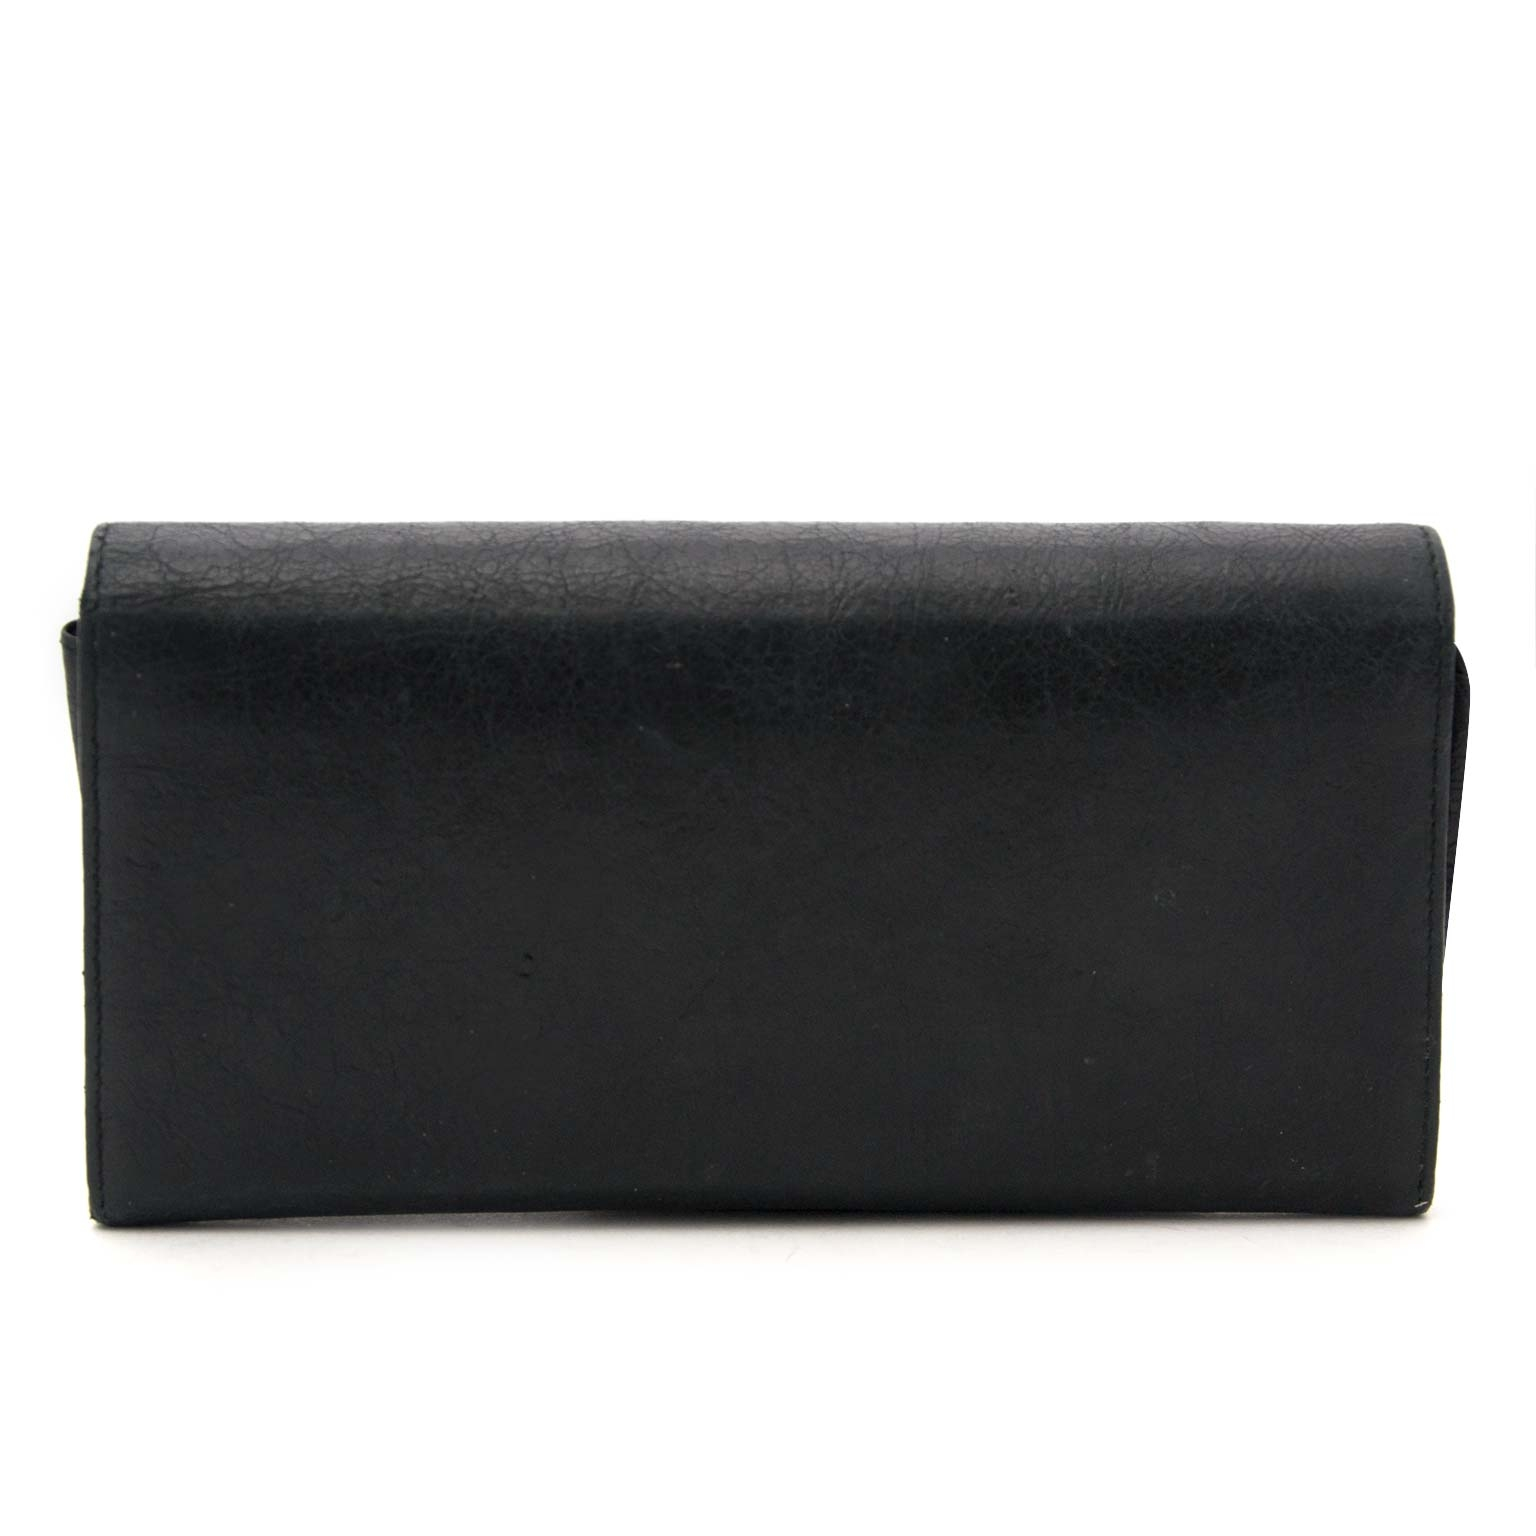 Balenciaga Black Giant Studded Leather Wallet  Buy authentic designer Balenciaga secondhand wallet at Labellov at the best price. Safe and secure shopping. Koop tweedehands authentieke Balenciaga portefeuille bij designer webwinkel labellov.